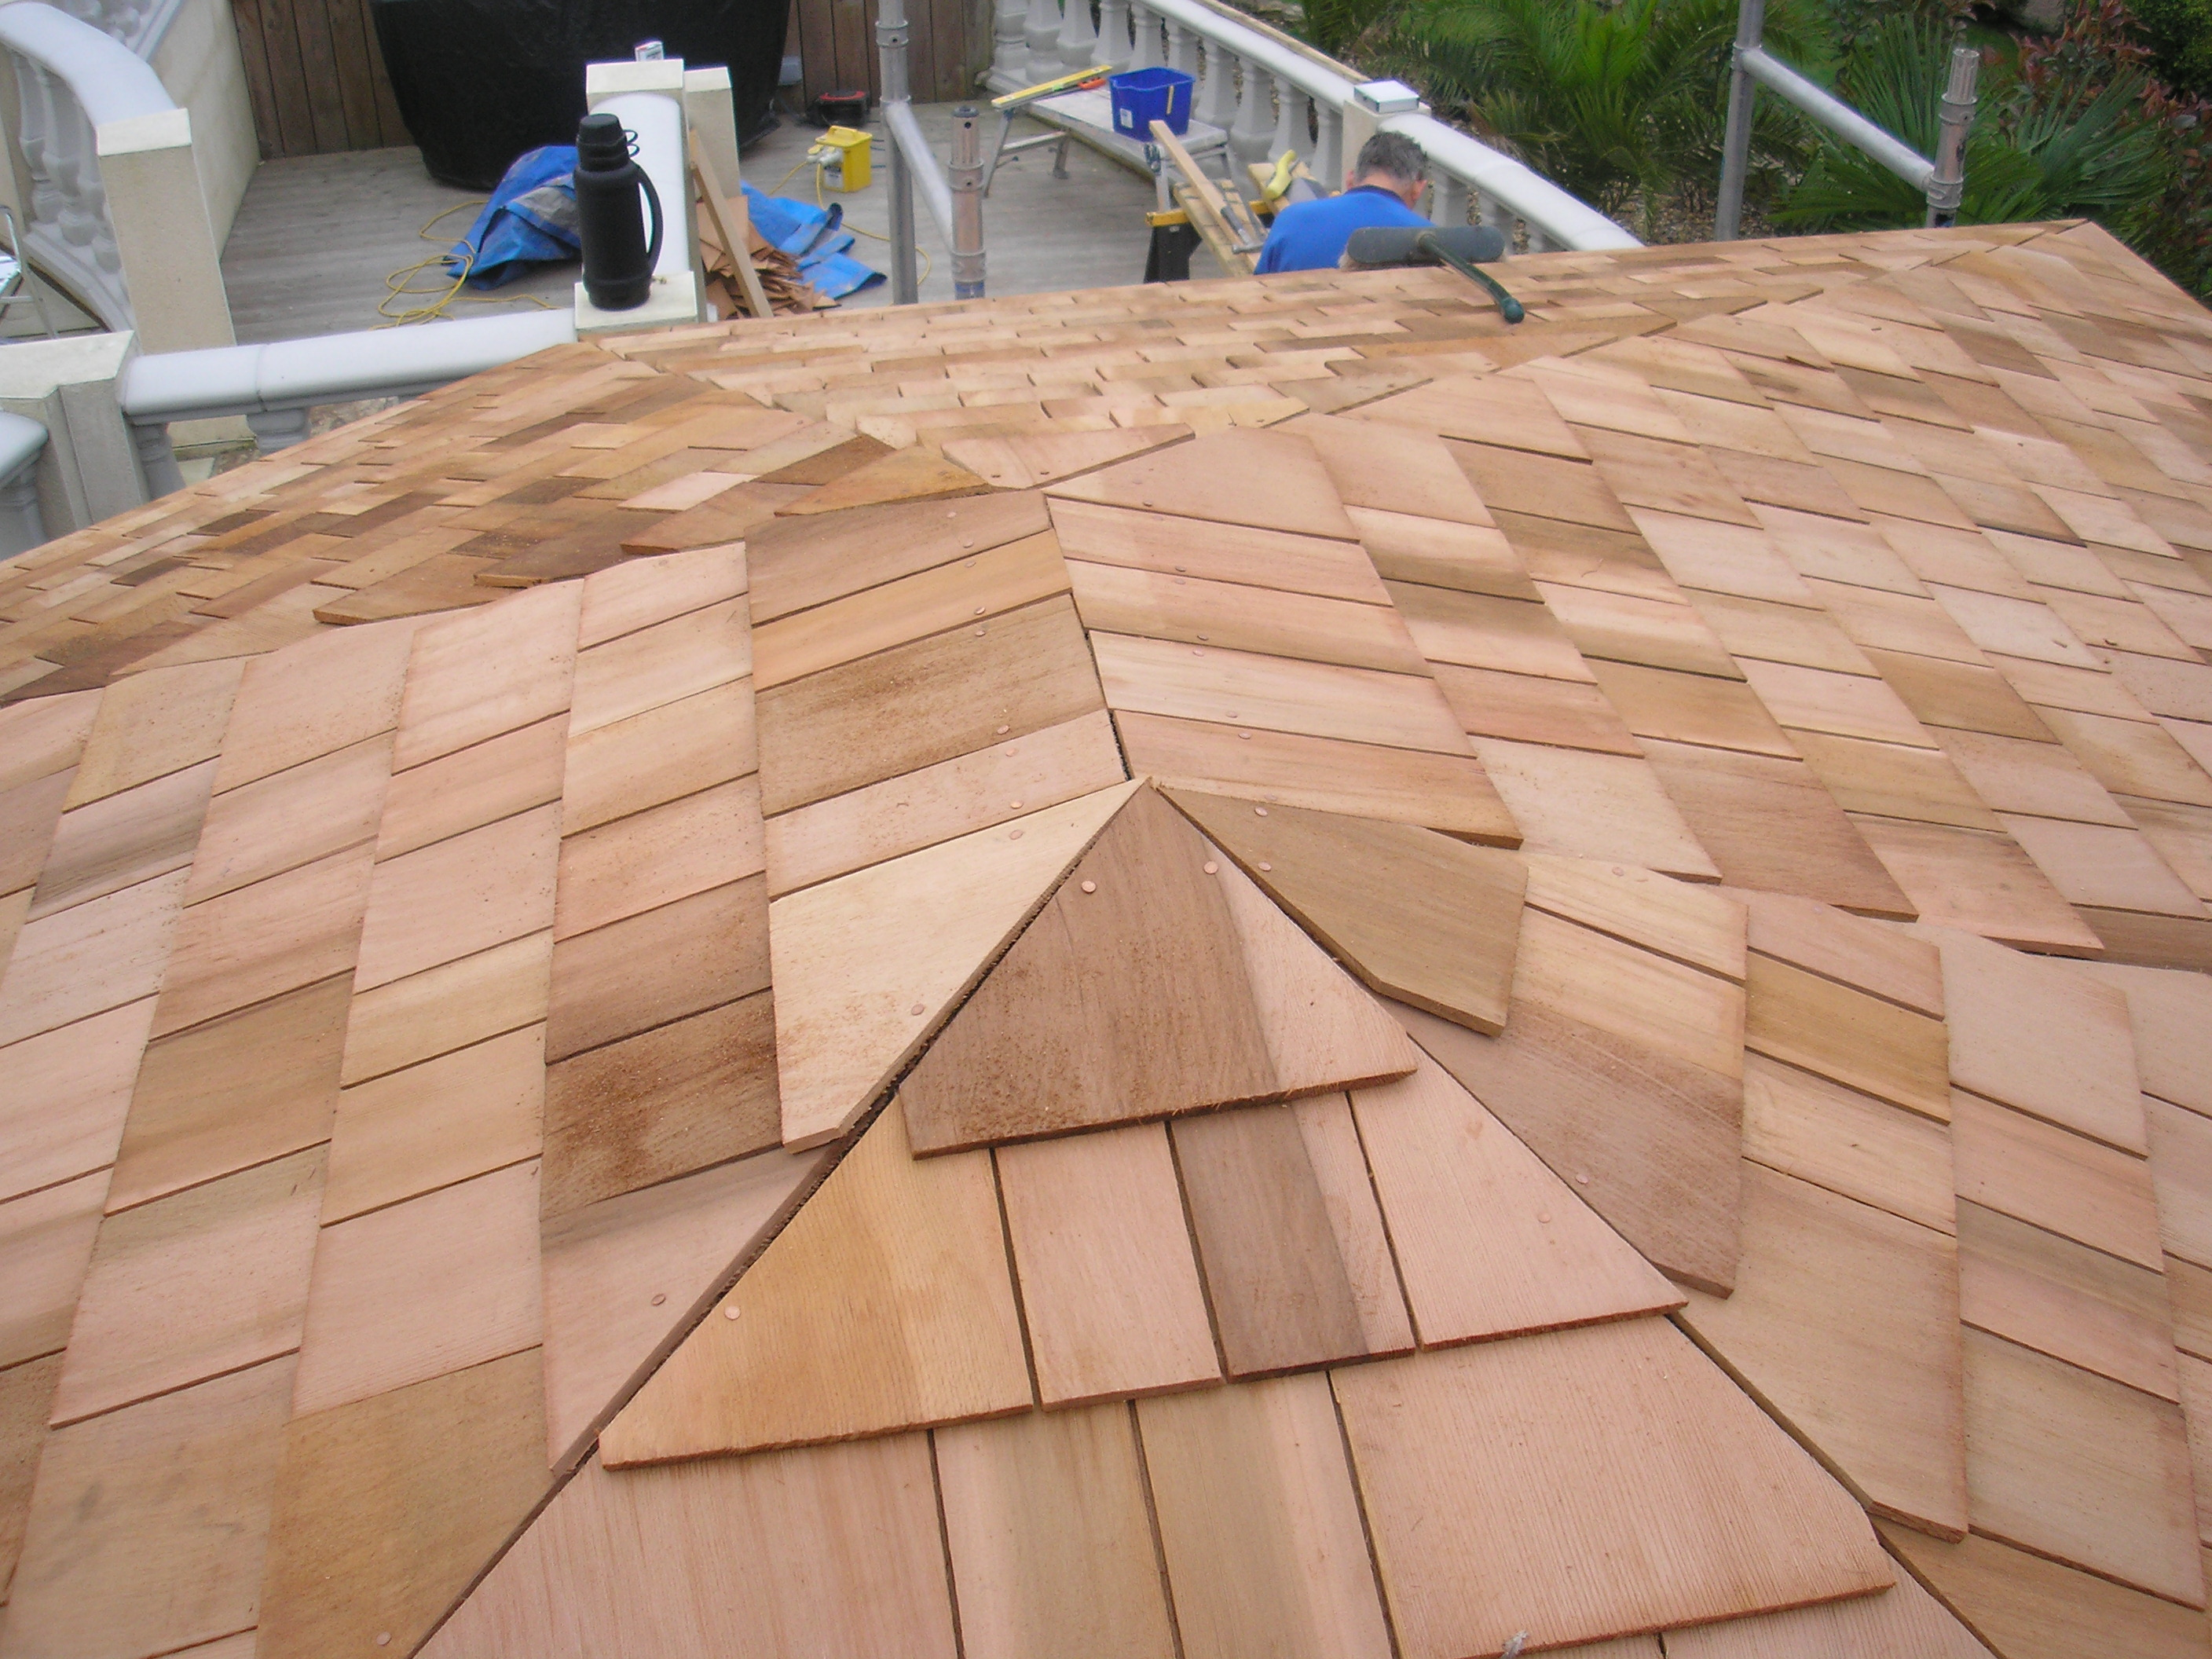 shingle roof works 004